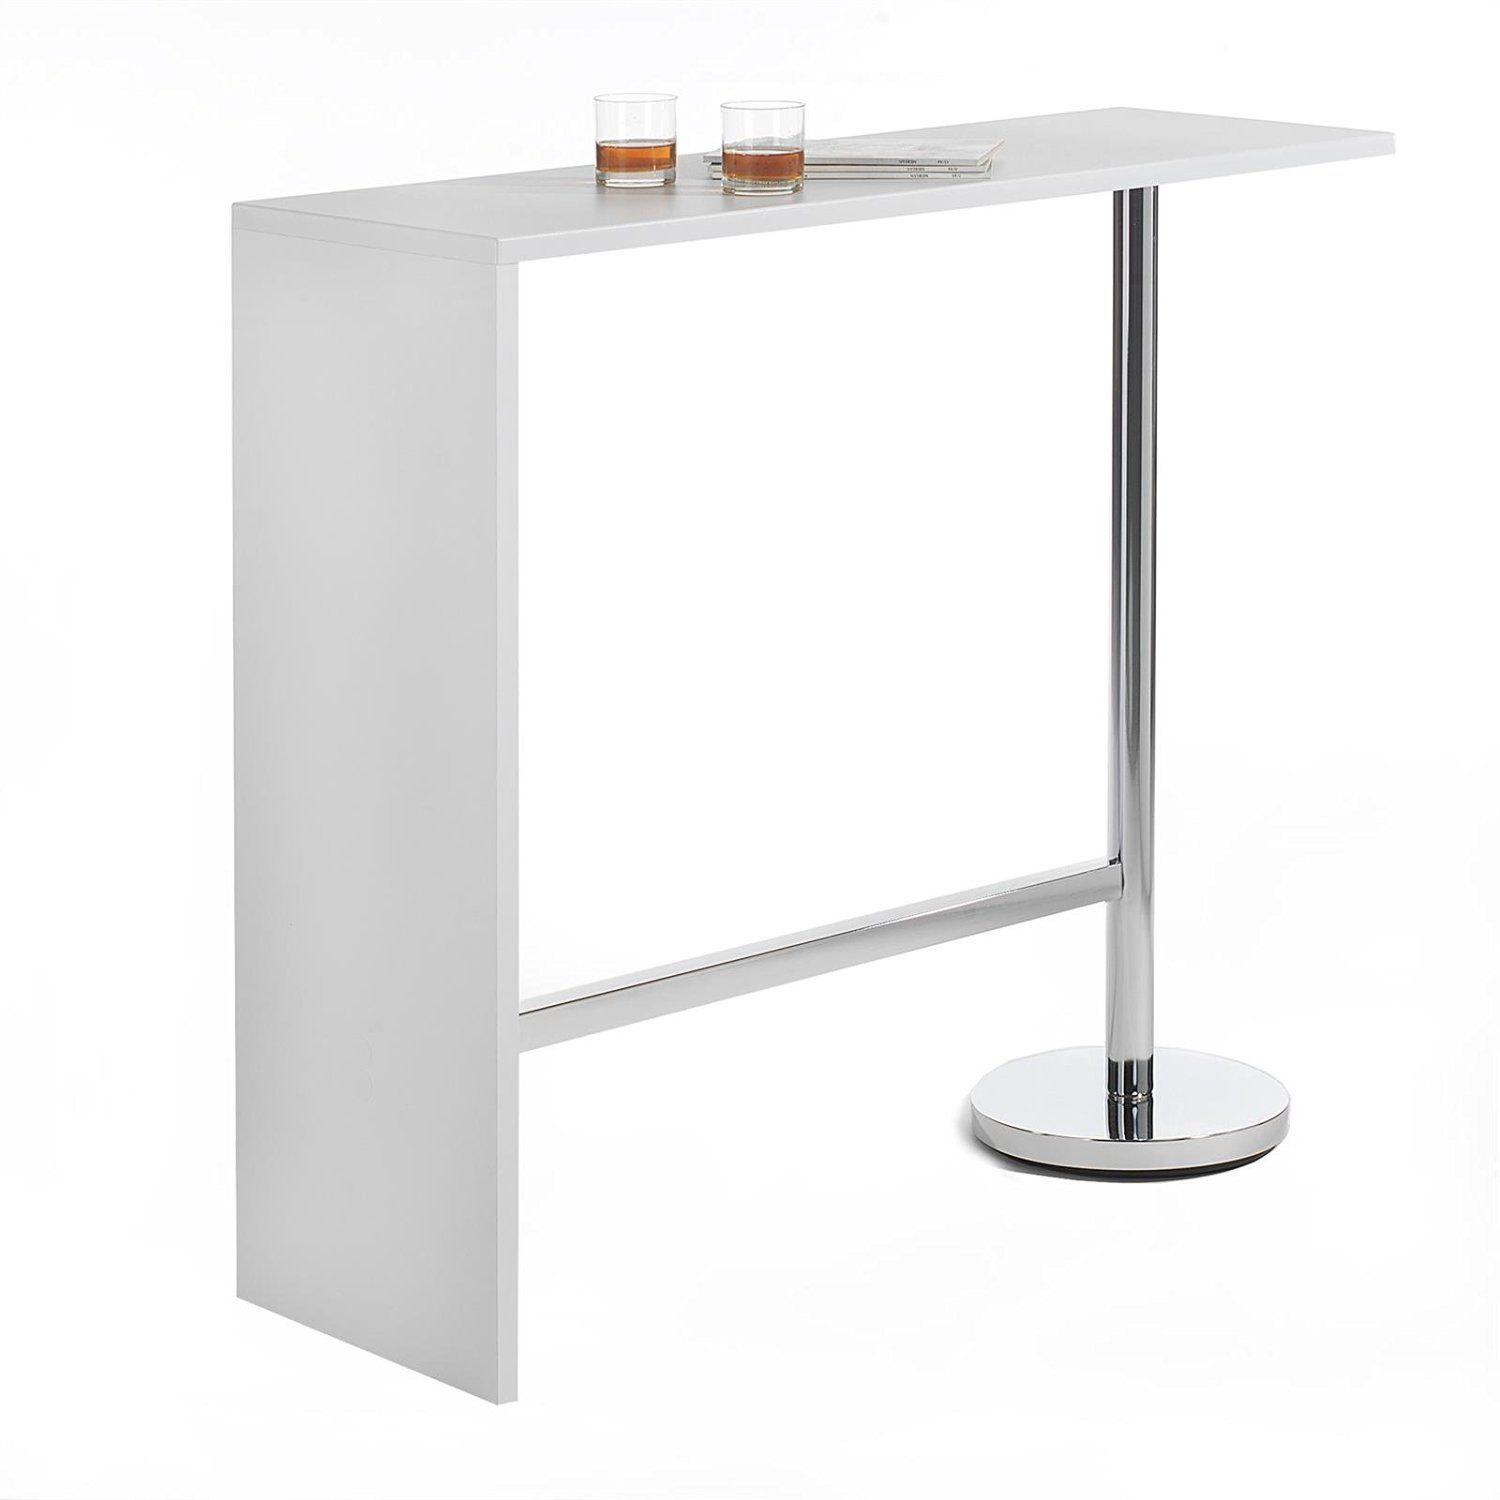 Table haute de bar mange debout ricardo mdf d cor blanc for Meuble bar mange debout